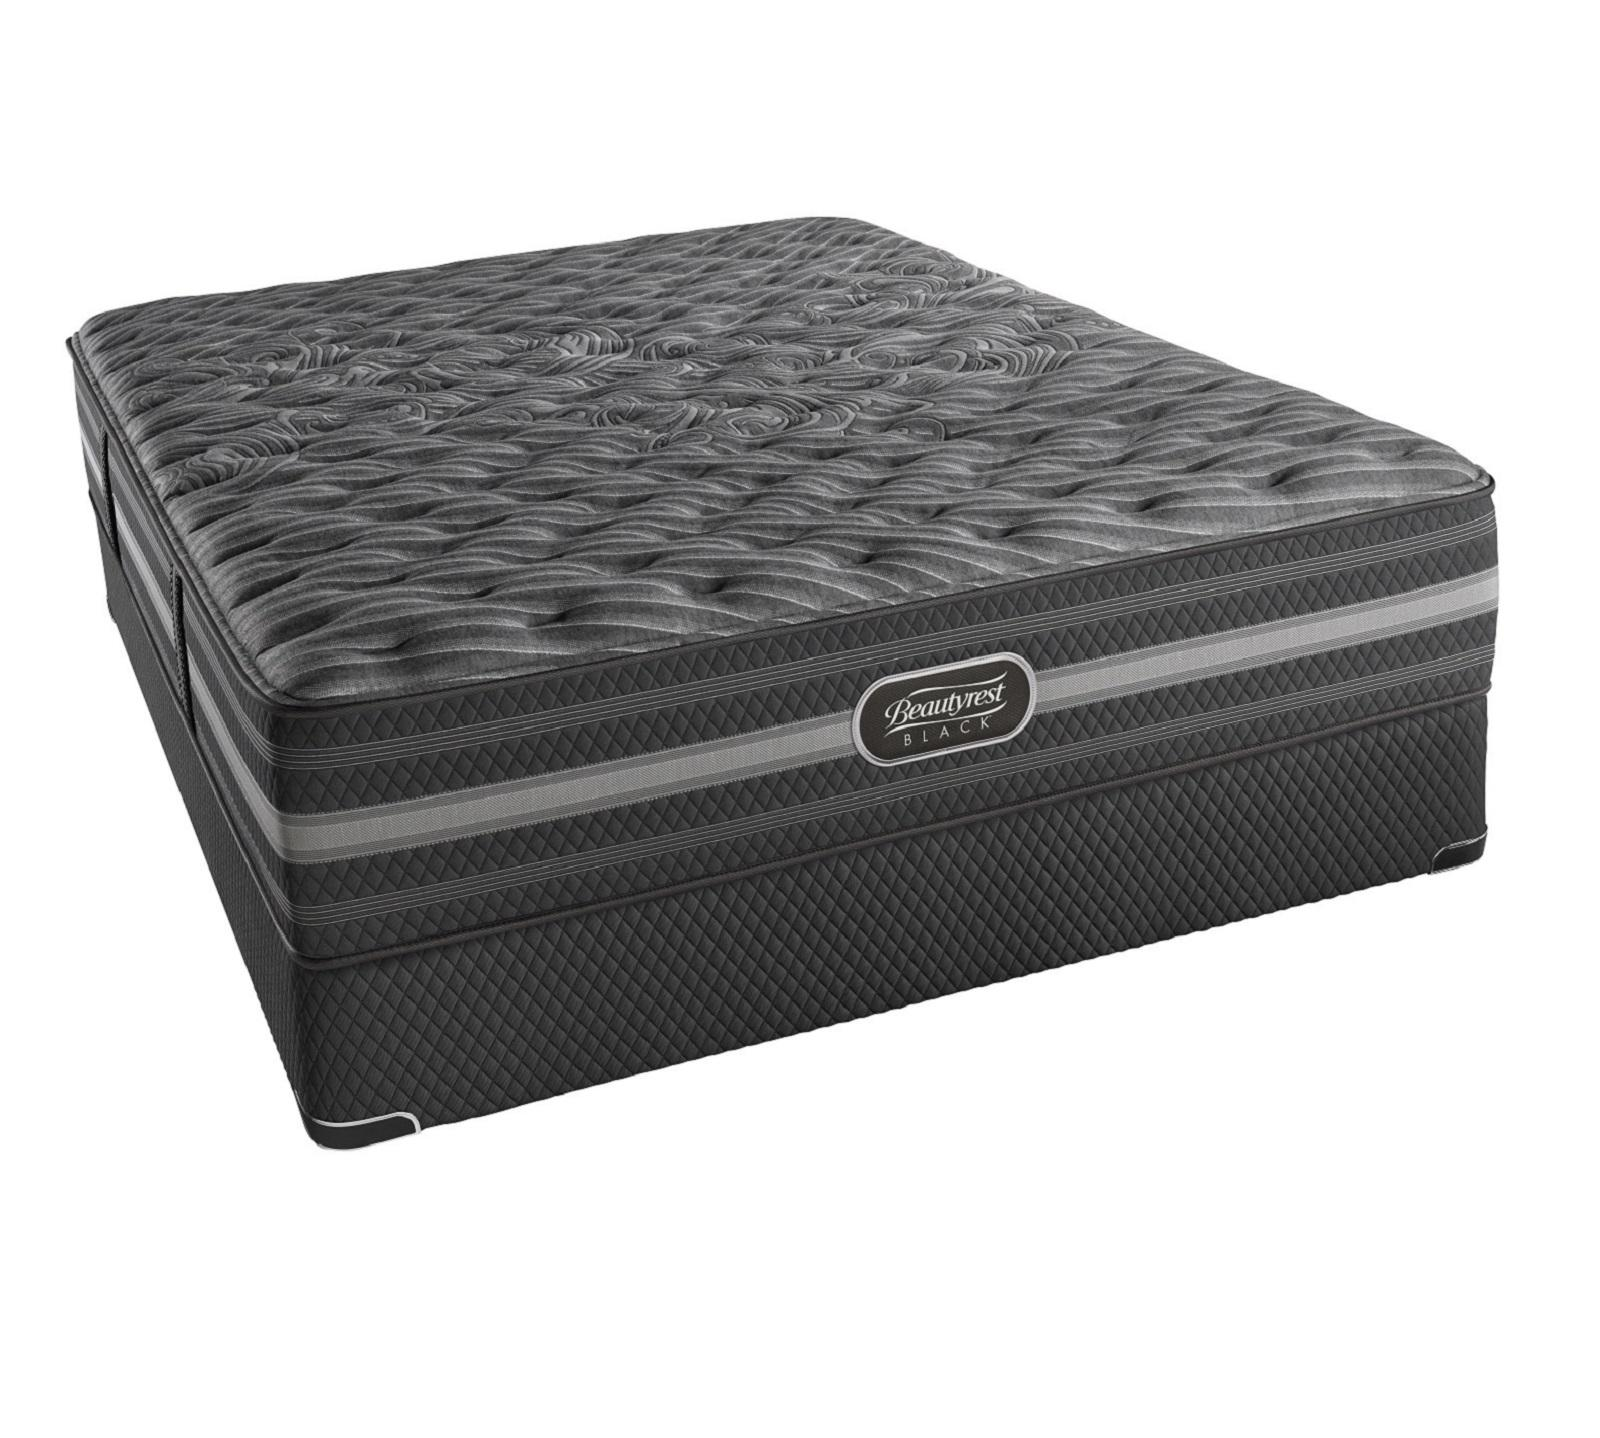 The Beautyrest Black Mariela Extra Firm Mattress is more than a mattress, it's a haven for deep, restorative sleep that inspires your senses. The experience goes beyond mere comfort, it creates a restful escape where sleep is the ultimate luxury. It features Advanced Pocketed Coil® Technology that provides individualized back support, ease of movement, and pressure point relief throughout the night. Its Micro Diamond™ Memory Foam works with the Pocketed Coil® springs to create amazing conforming back support. Micro diamonds in the foam work to conduct heat away from the body to prevent overheating. It also features SurfaceCool™ Plus Fiber, located at the surface of the bed, it is designed to dissipate body heat away from the sleeping surface to help keep you comfortable throughout the night.